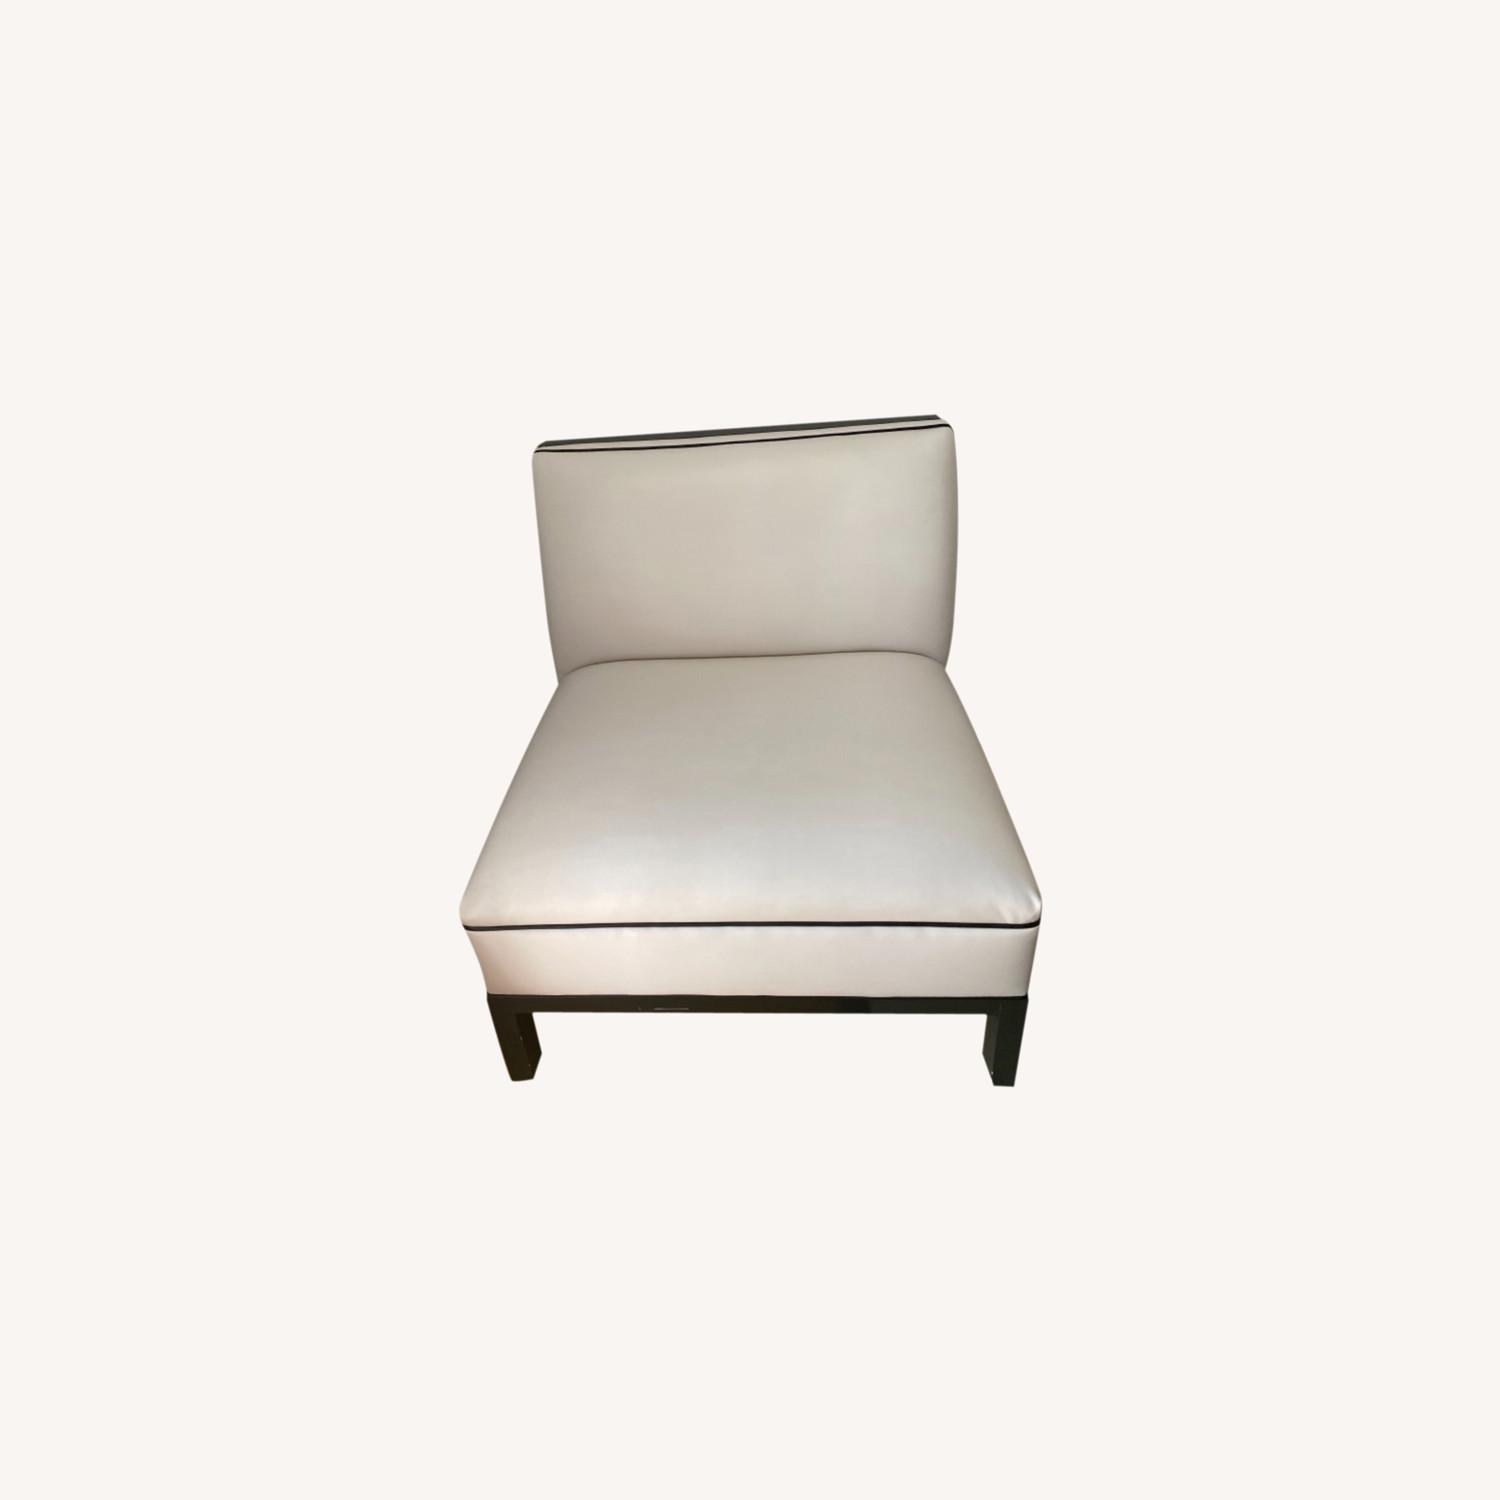 DucDuc Black and White Leather Chair - image-0